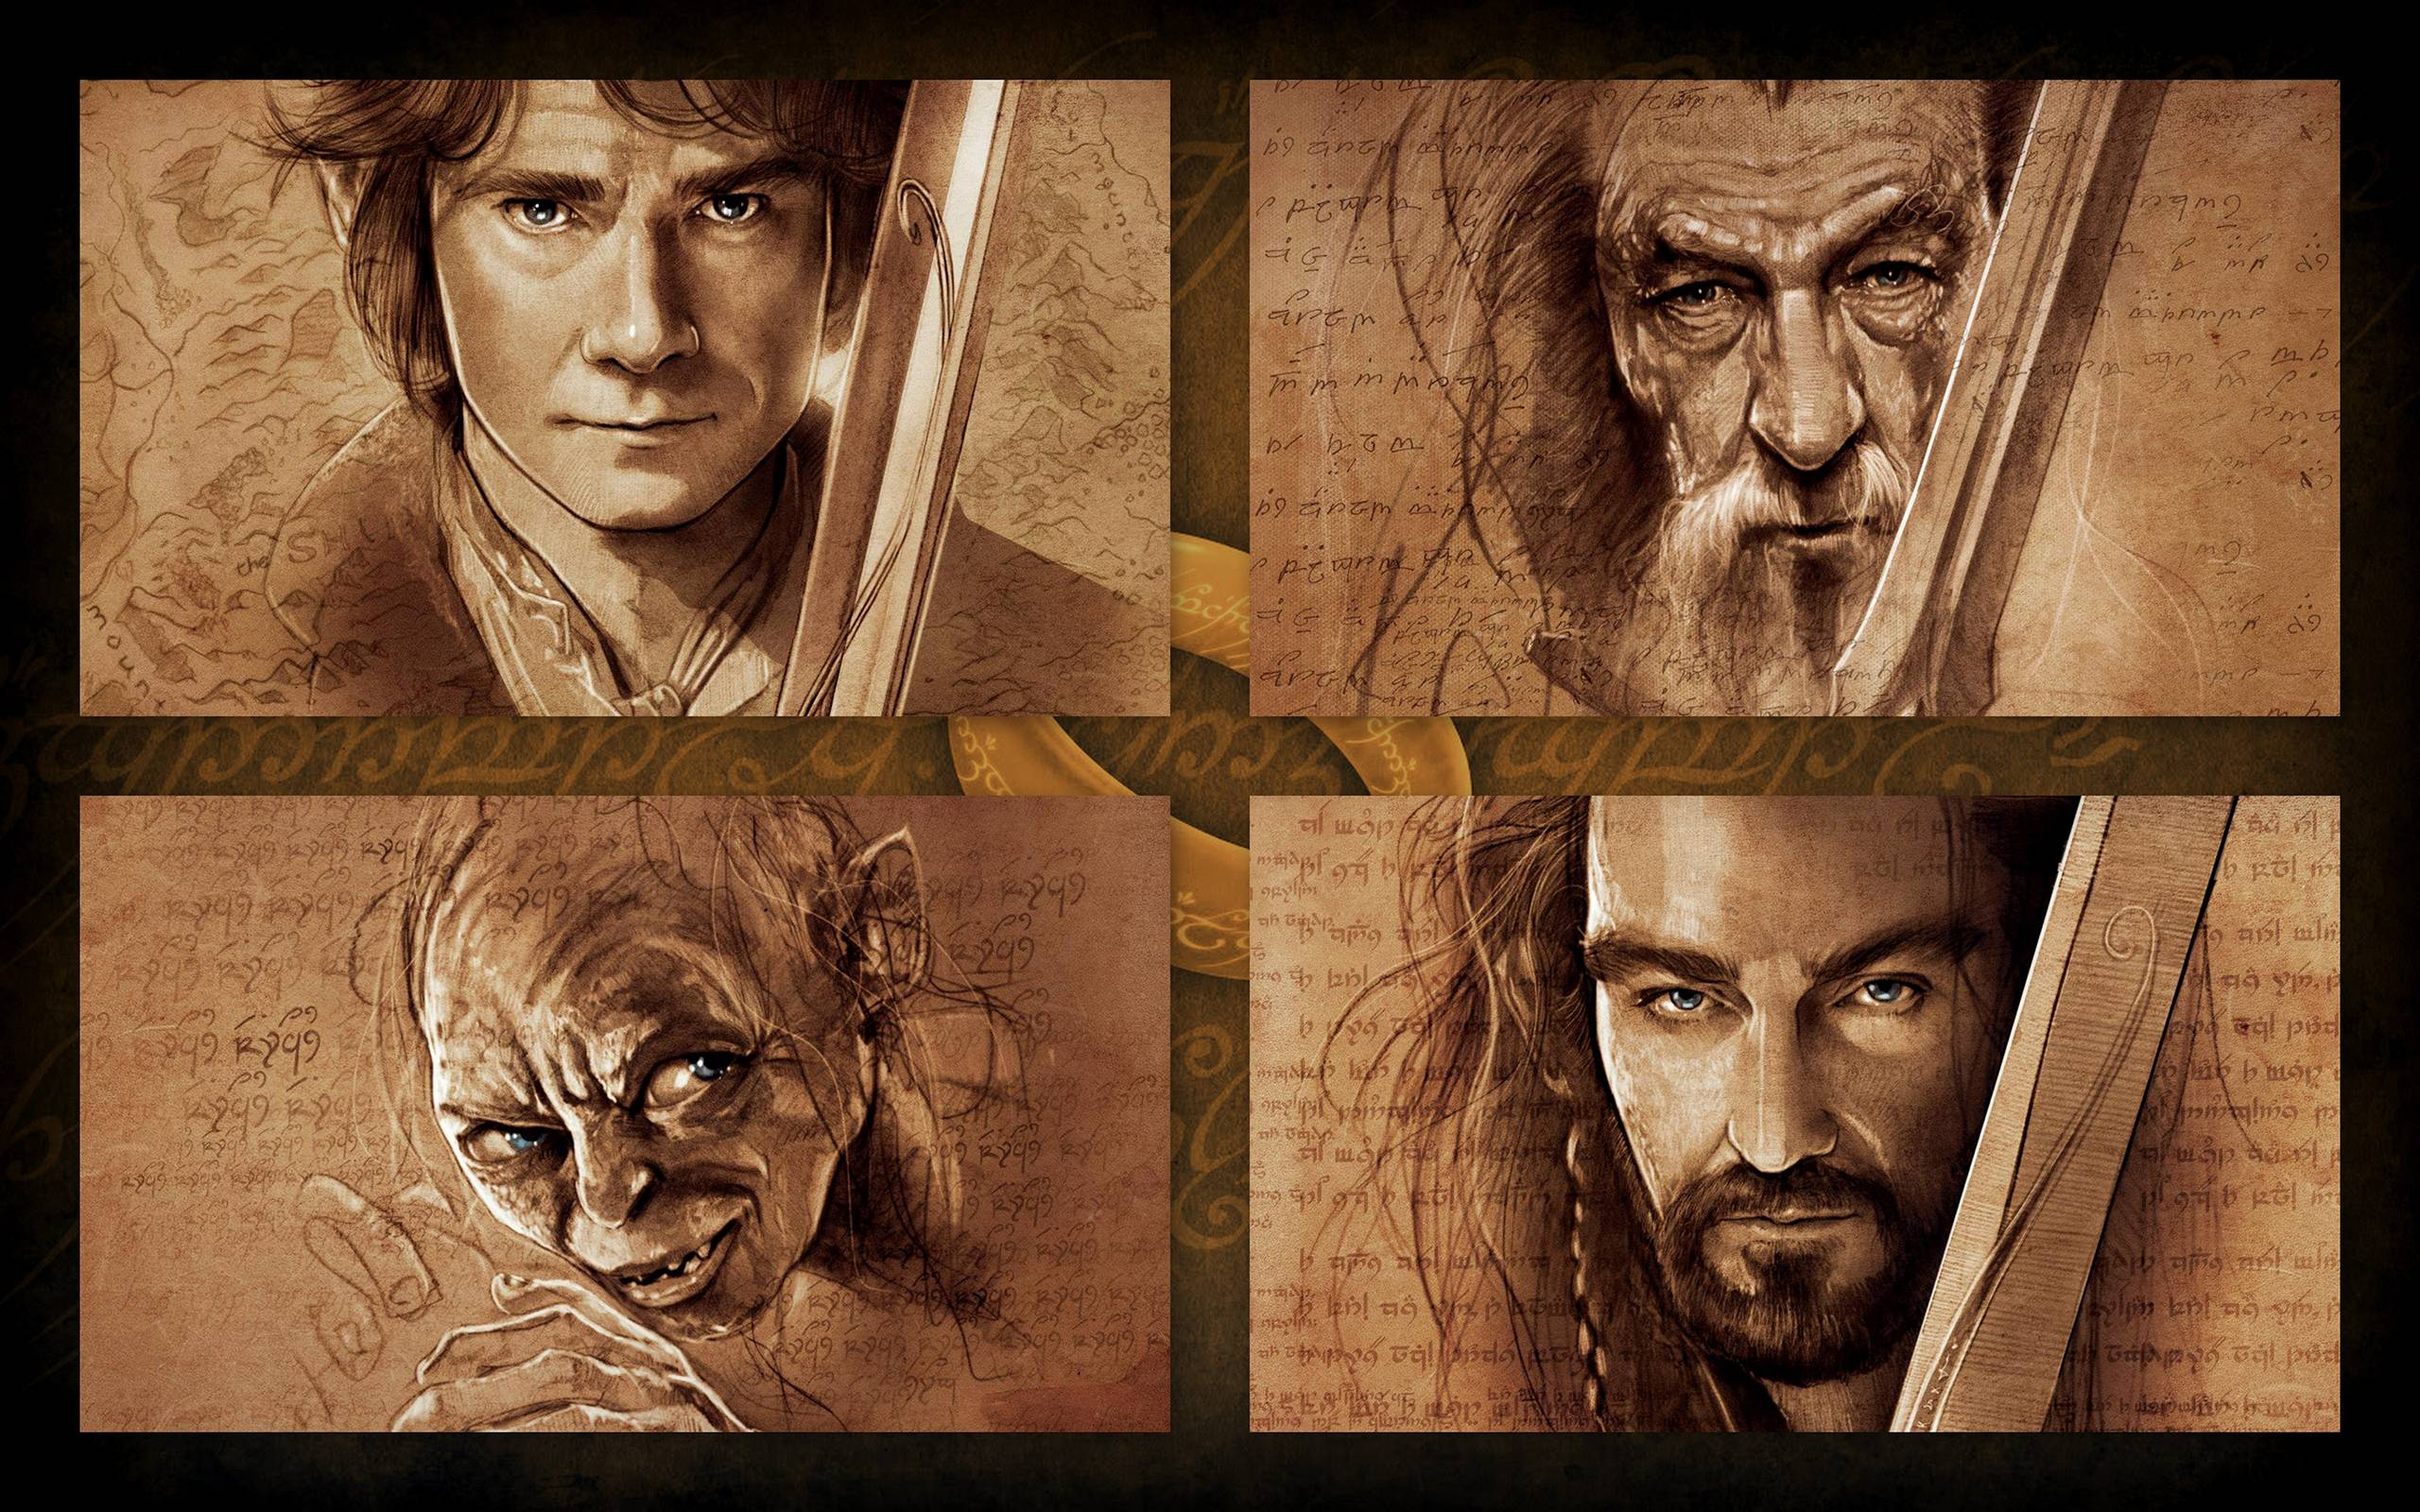 87 The Hobbit: An Unexpected Journey Wallpapers | The Hobbit: An ...